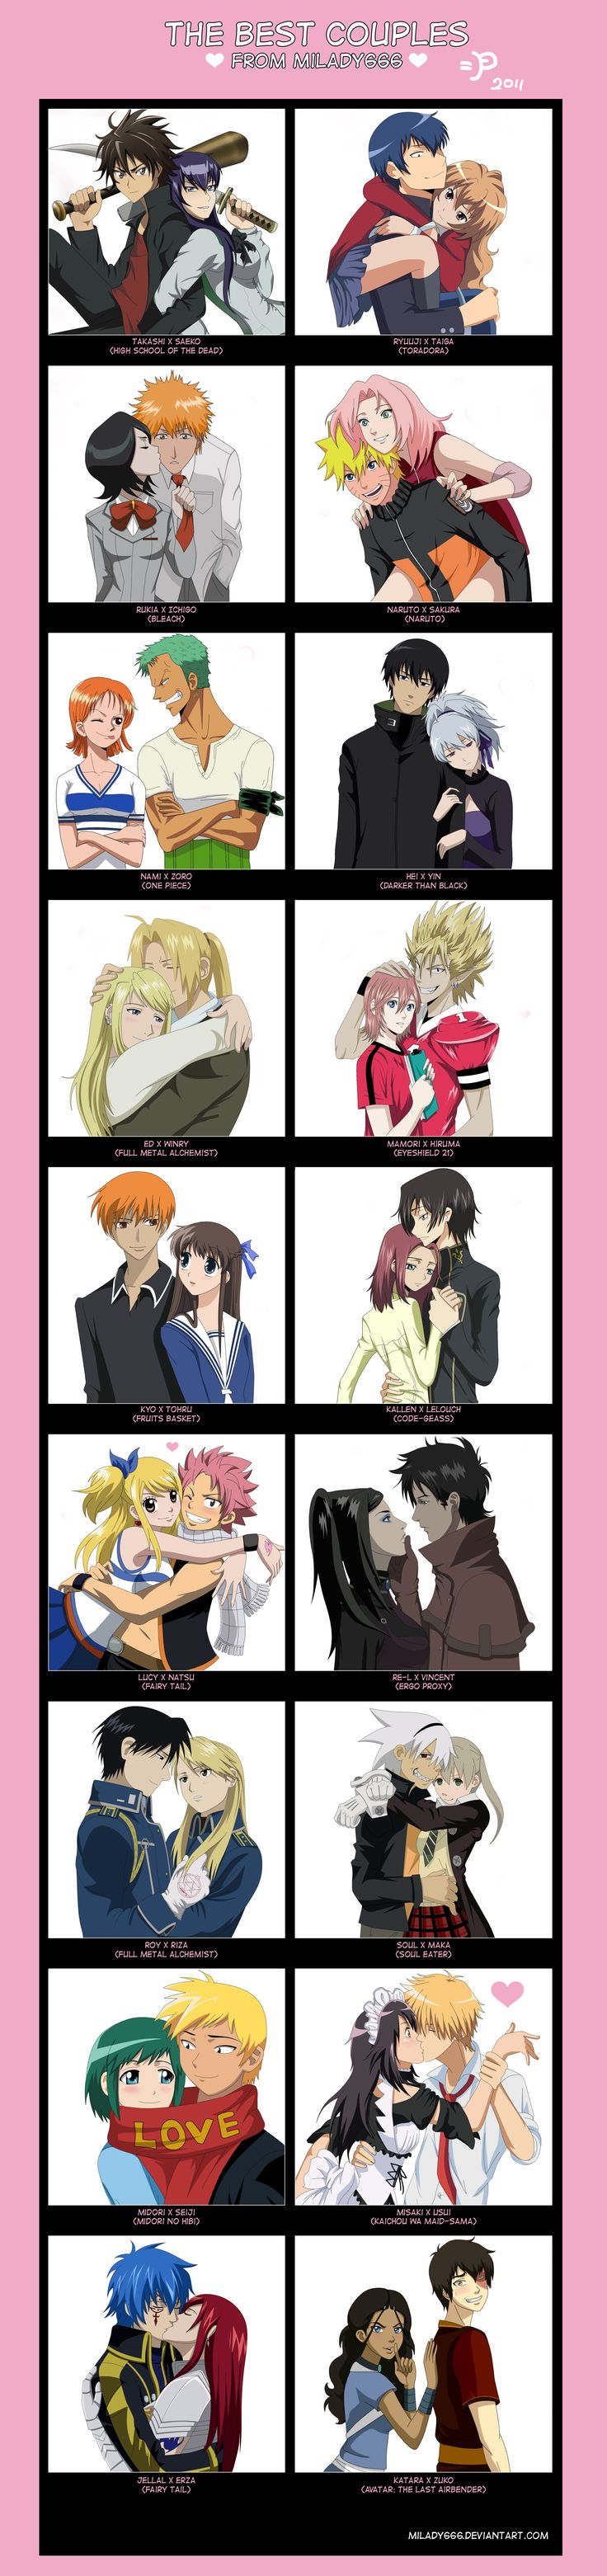 -sees Roy and Riza- The feels.. -sees Natsu and Lucy- I'm gonna die of the feels.. -sees Erza and Jellal- EEEK